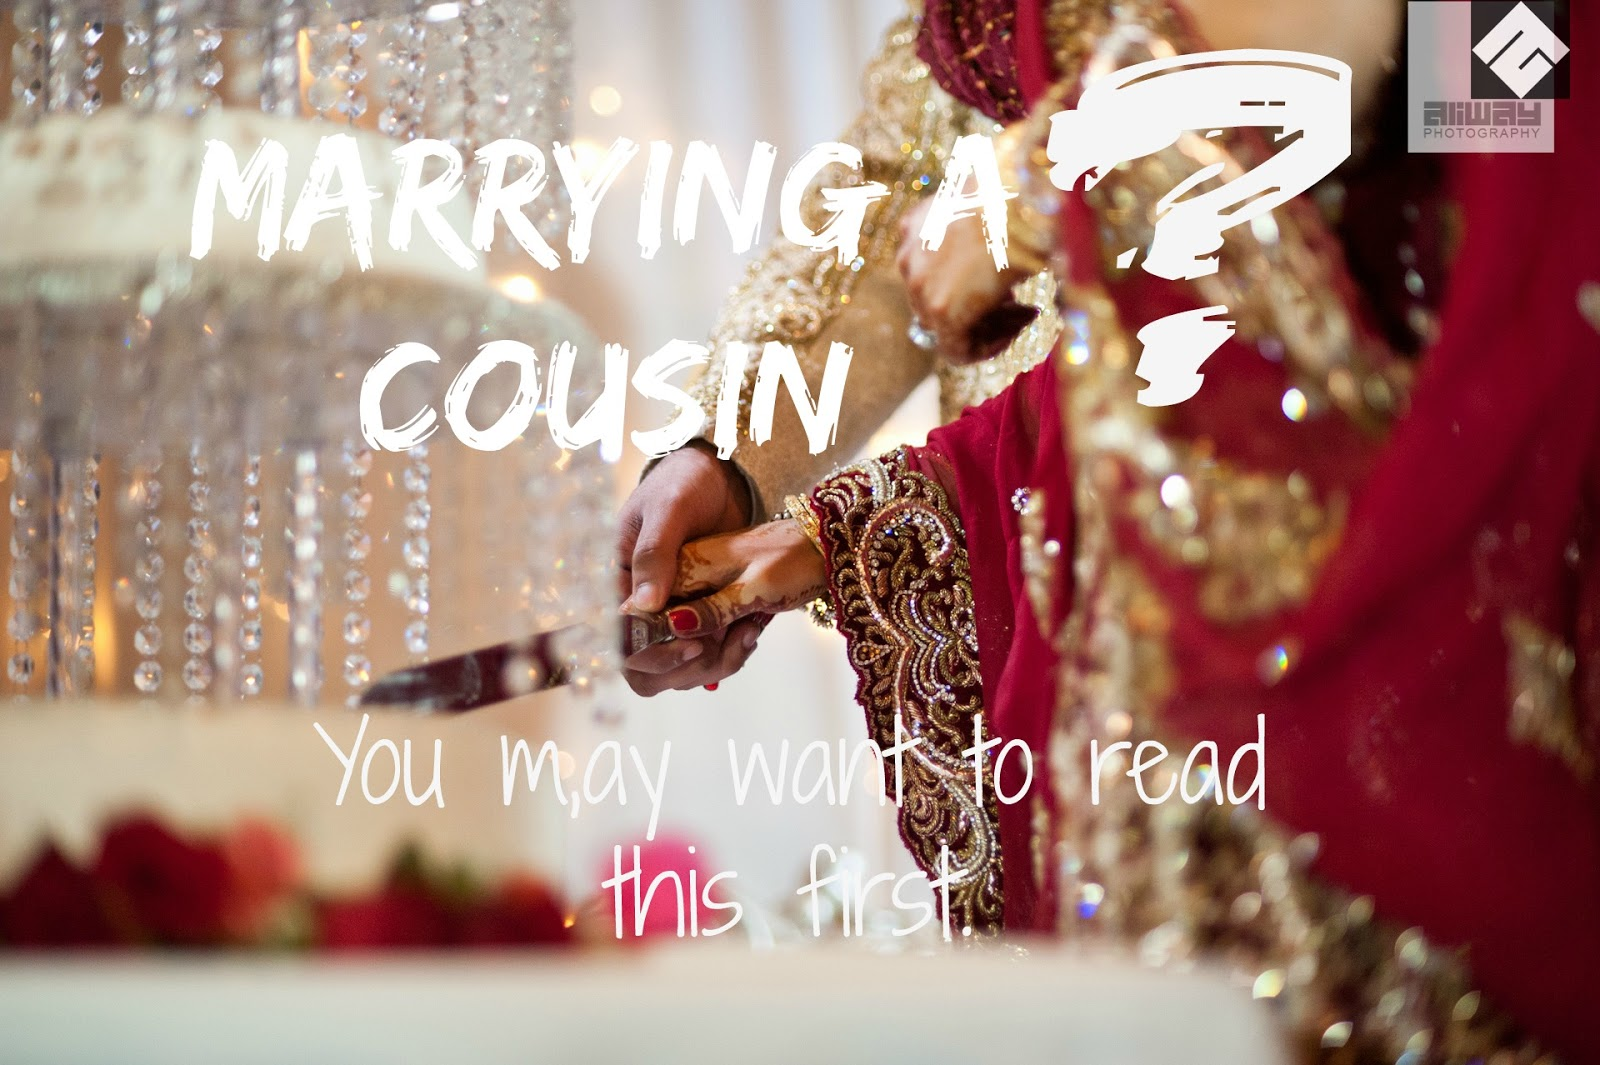 Marrying a cousin?, you may want to read this first  | The